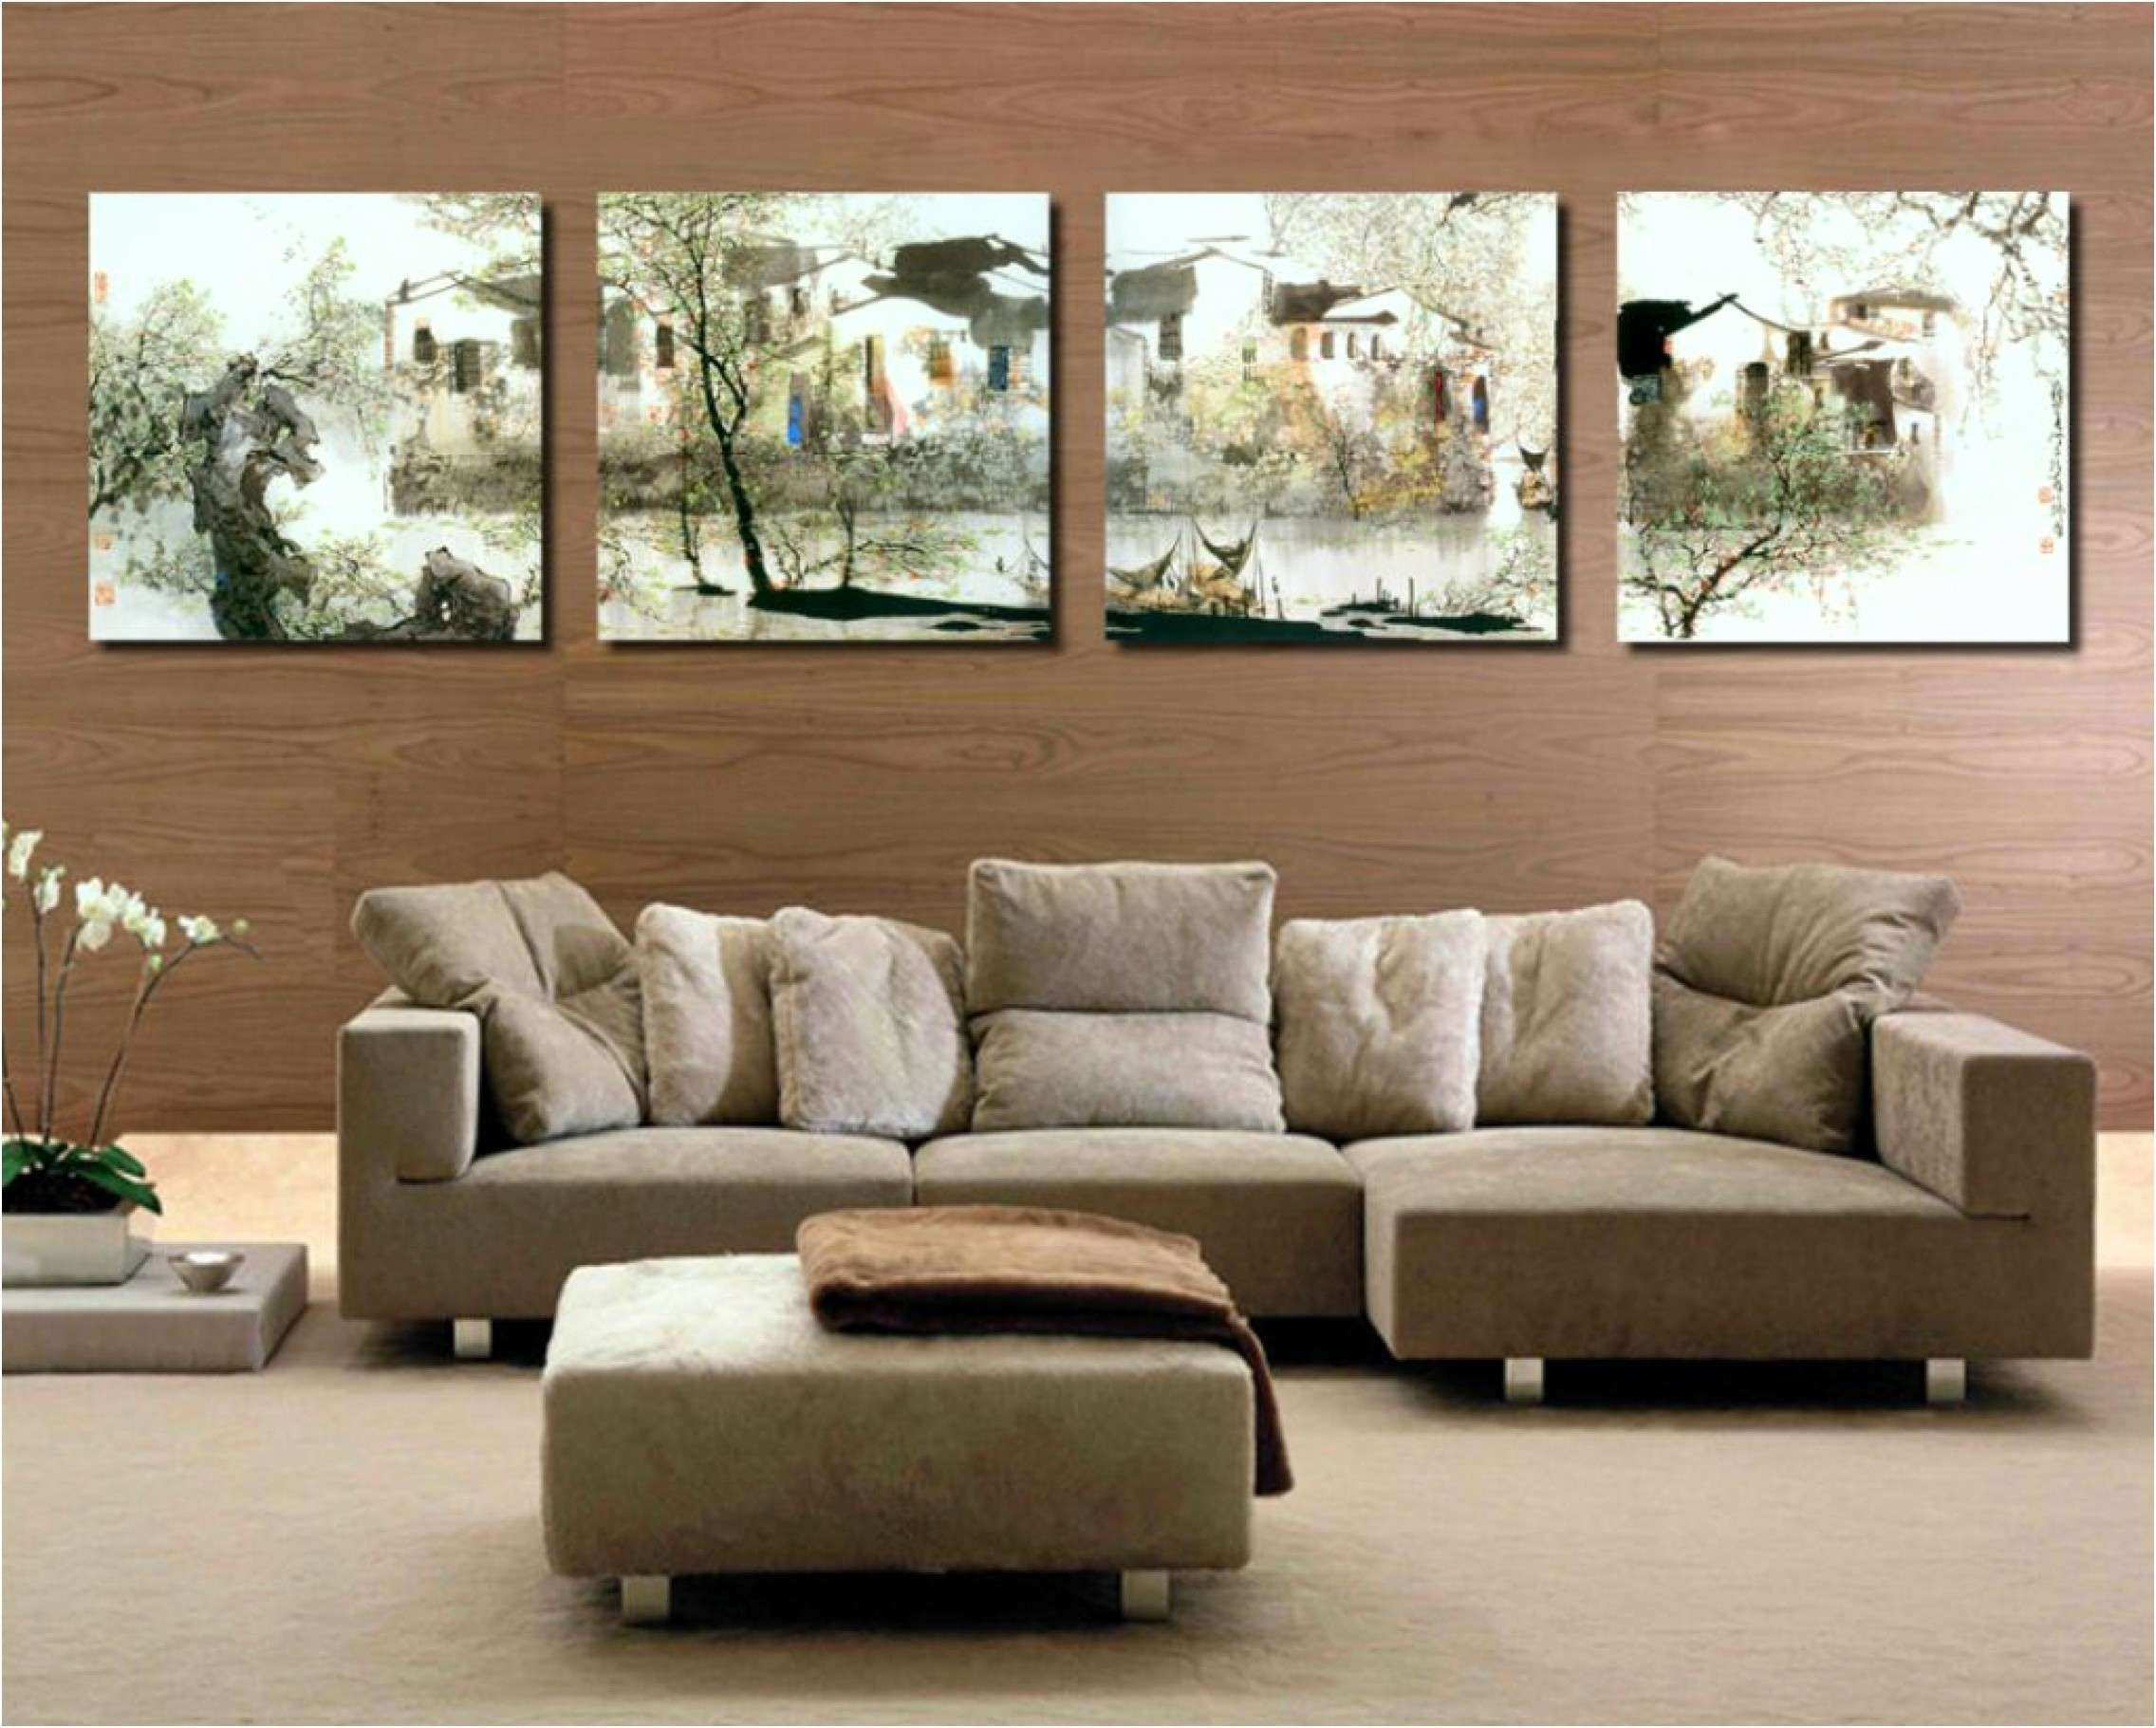 livingroom Wall Prints For Living Room Decor Diy Pinterest